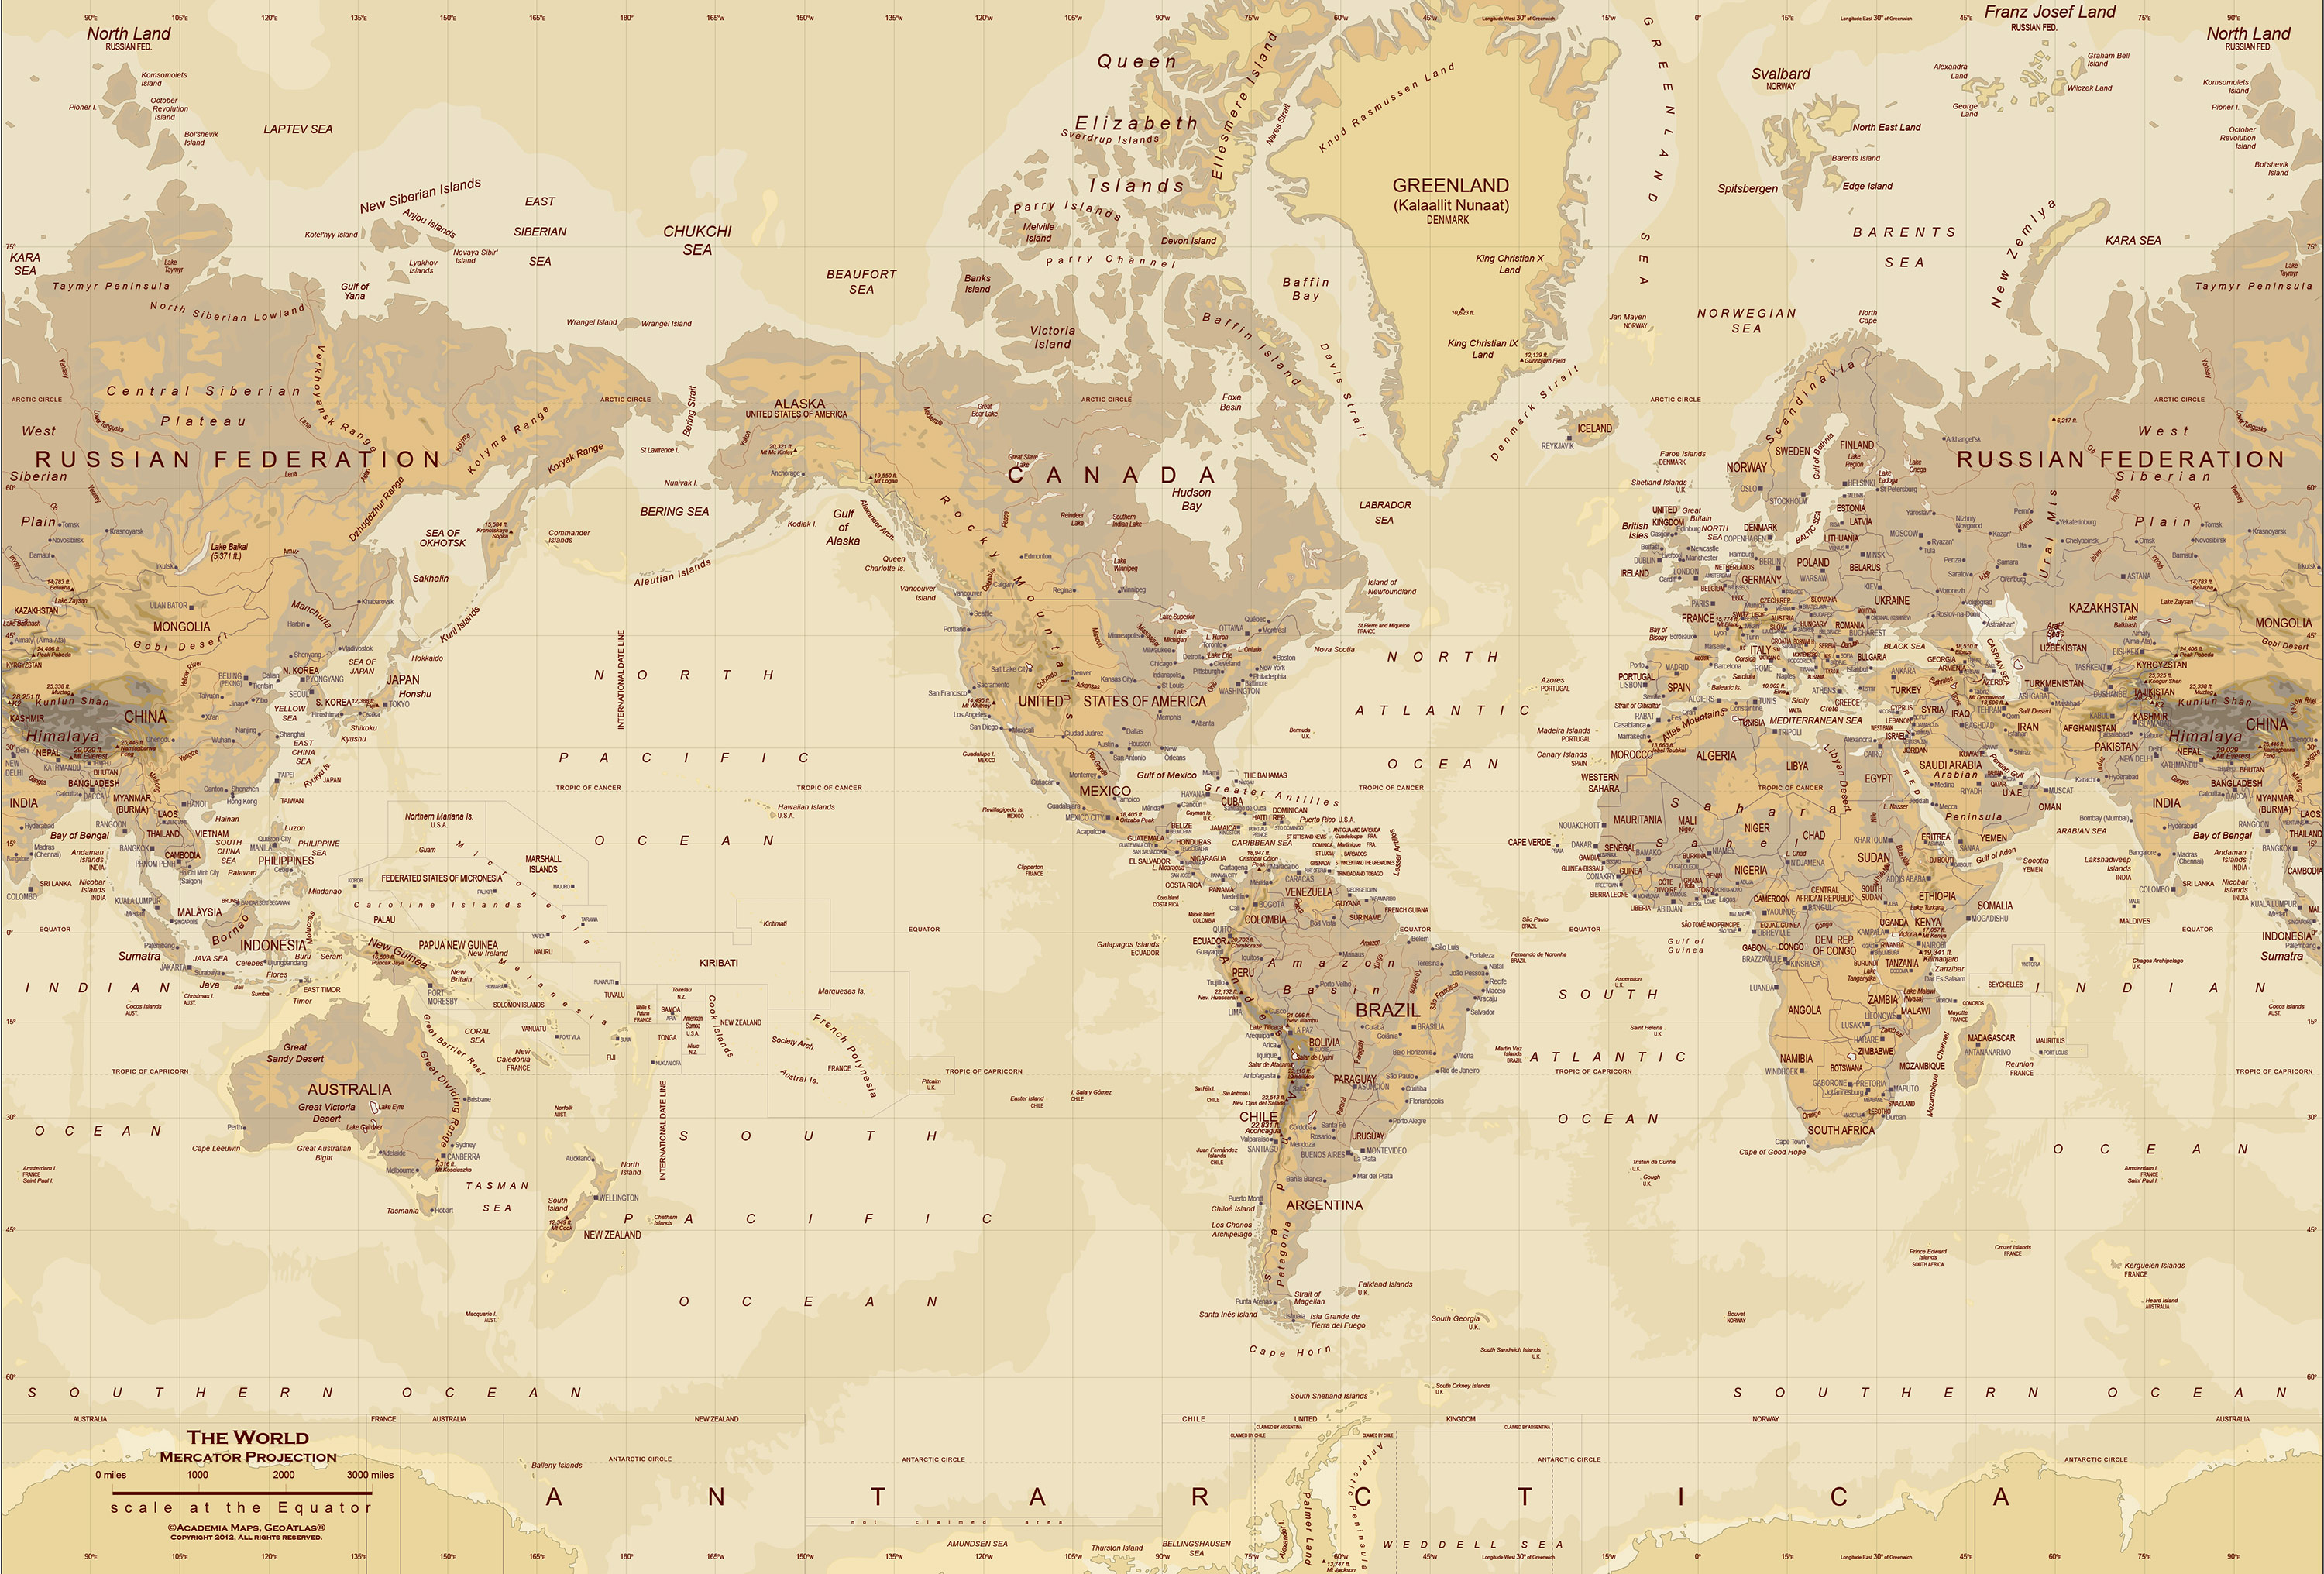 Tan World Map Wall Mural   up to 166 x 112 3000x2032